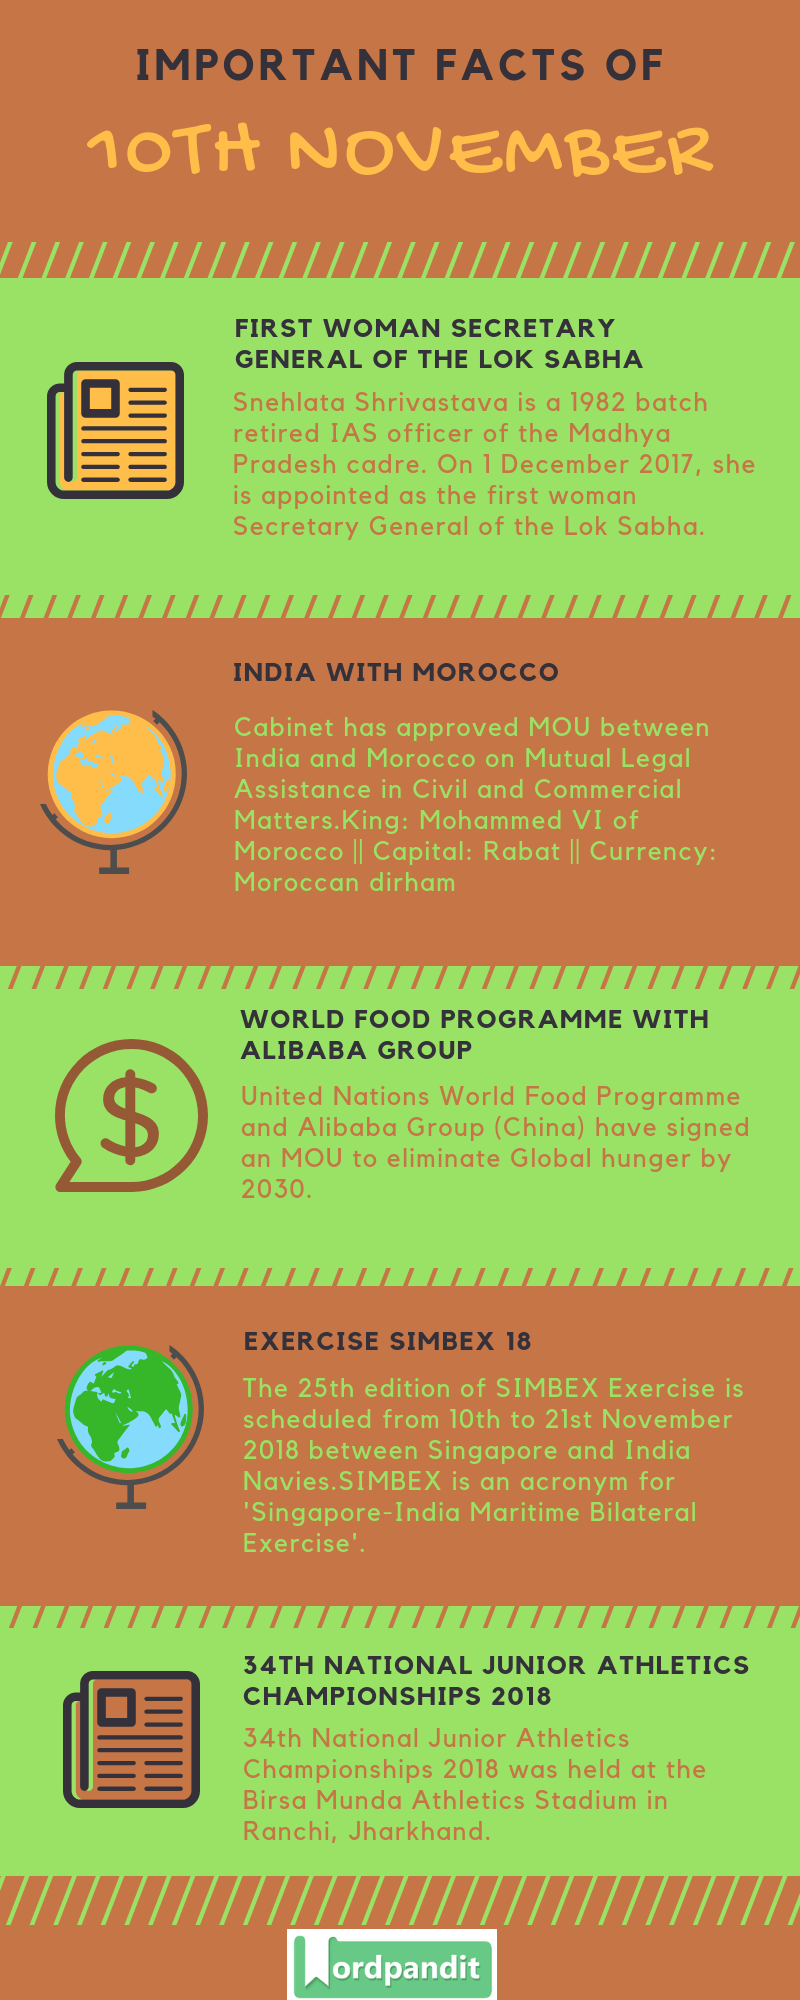 Daily Current Affairs 10 November 2018 Current Affairs Quiz 10 November 2018 Current Affairs Infographic